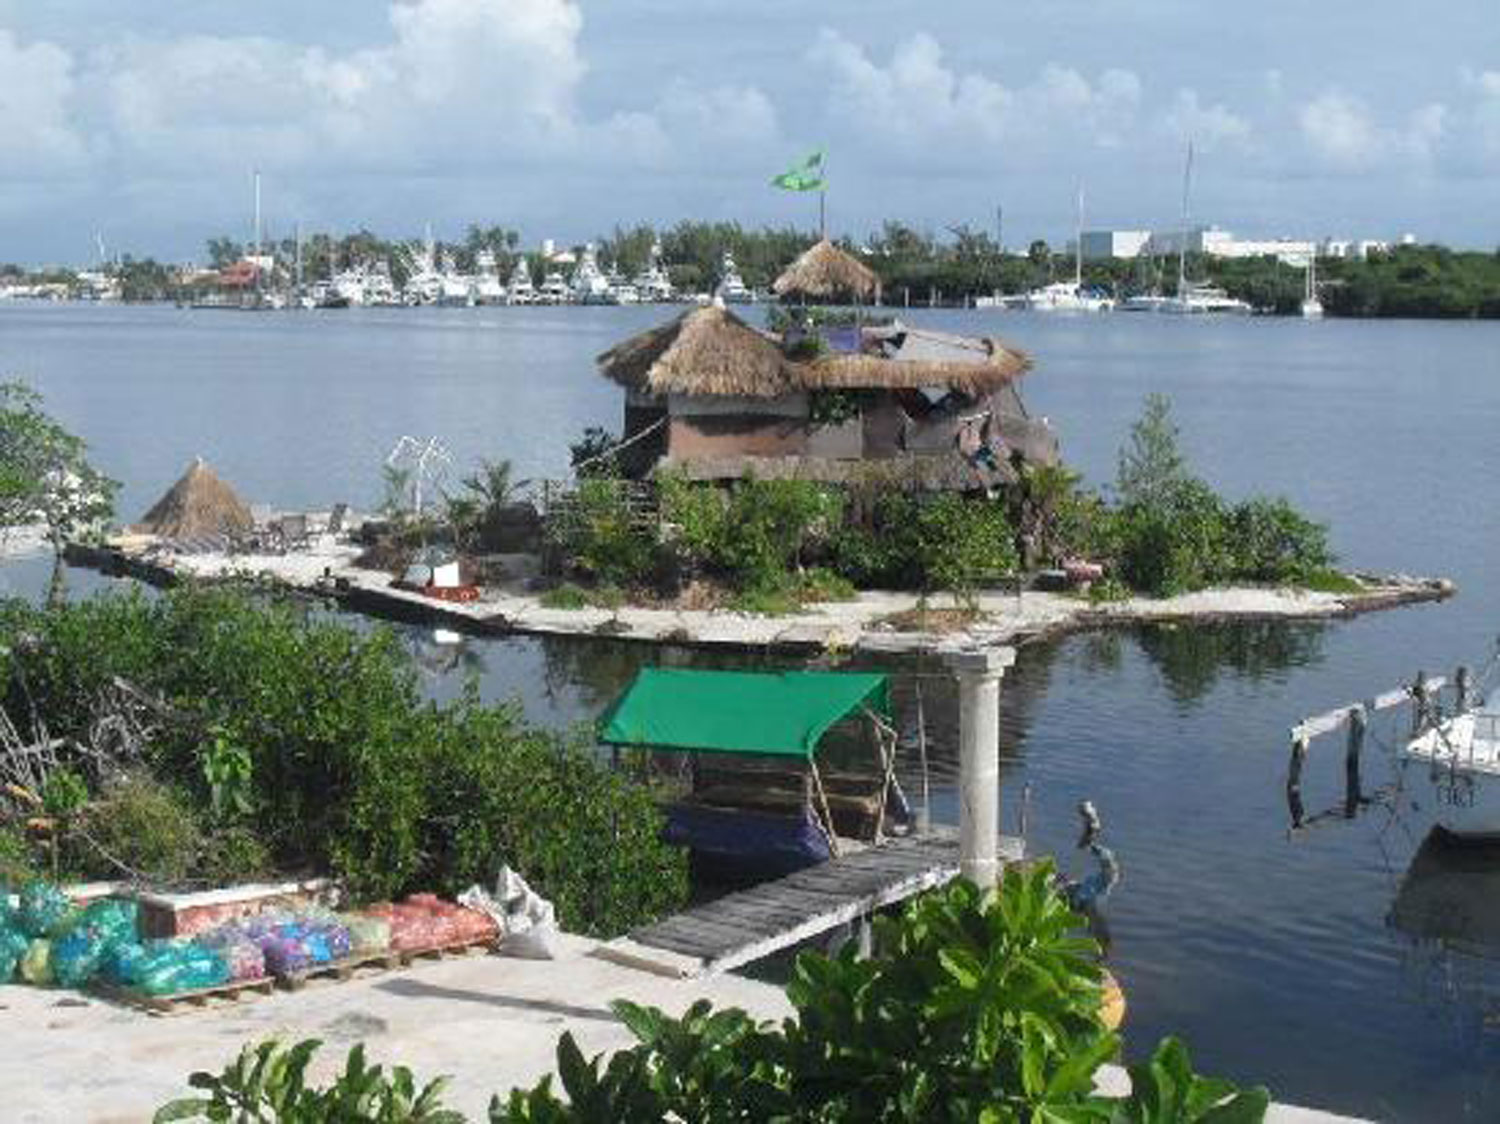 The eco house on the plastic island.